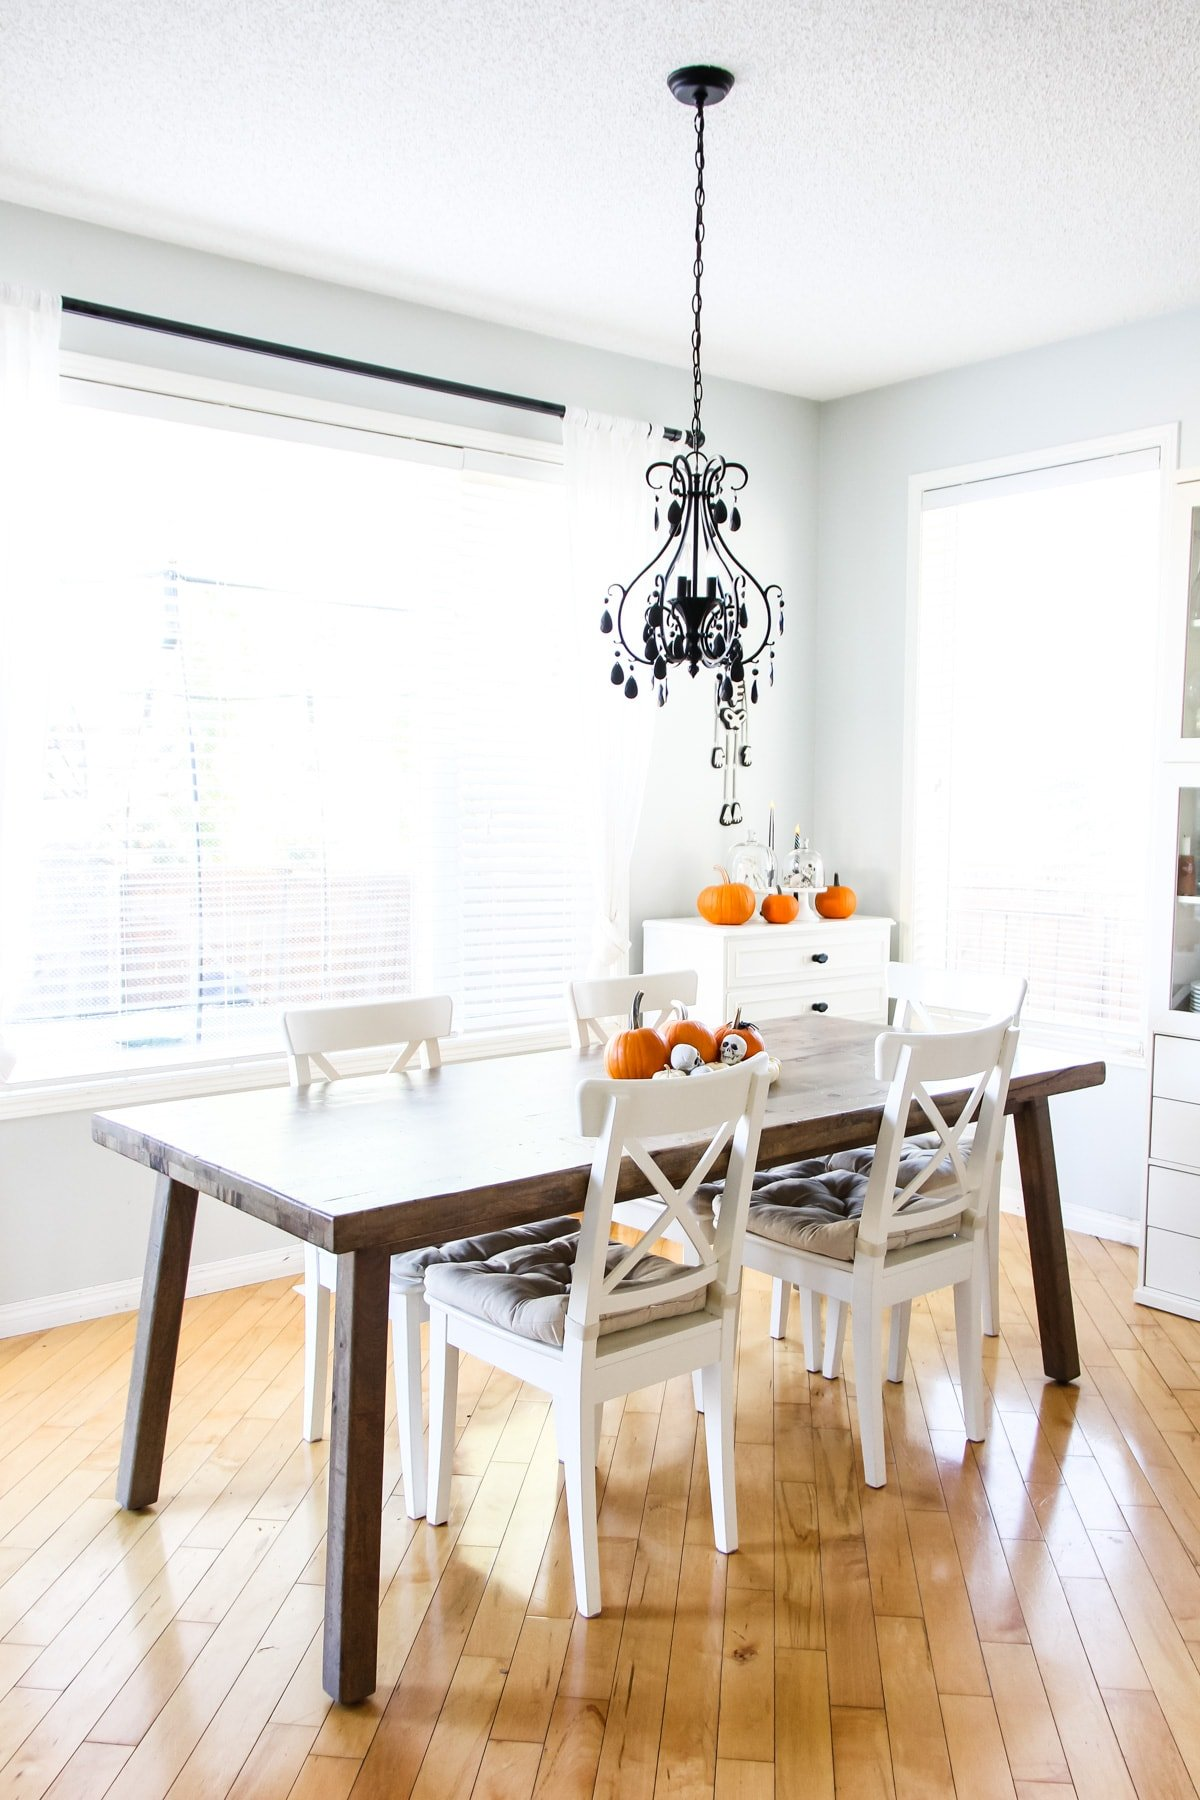 a wooden kitchen table and white chairs. hanging from the ceiling is a black chandelier. on the table are orange pumpkins and mini skulls